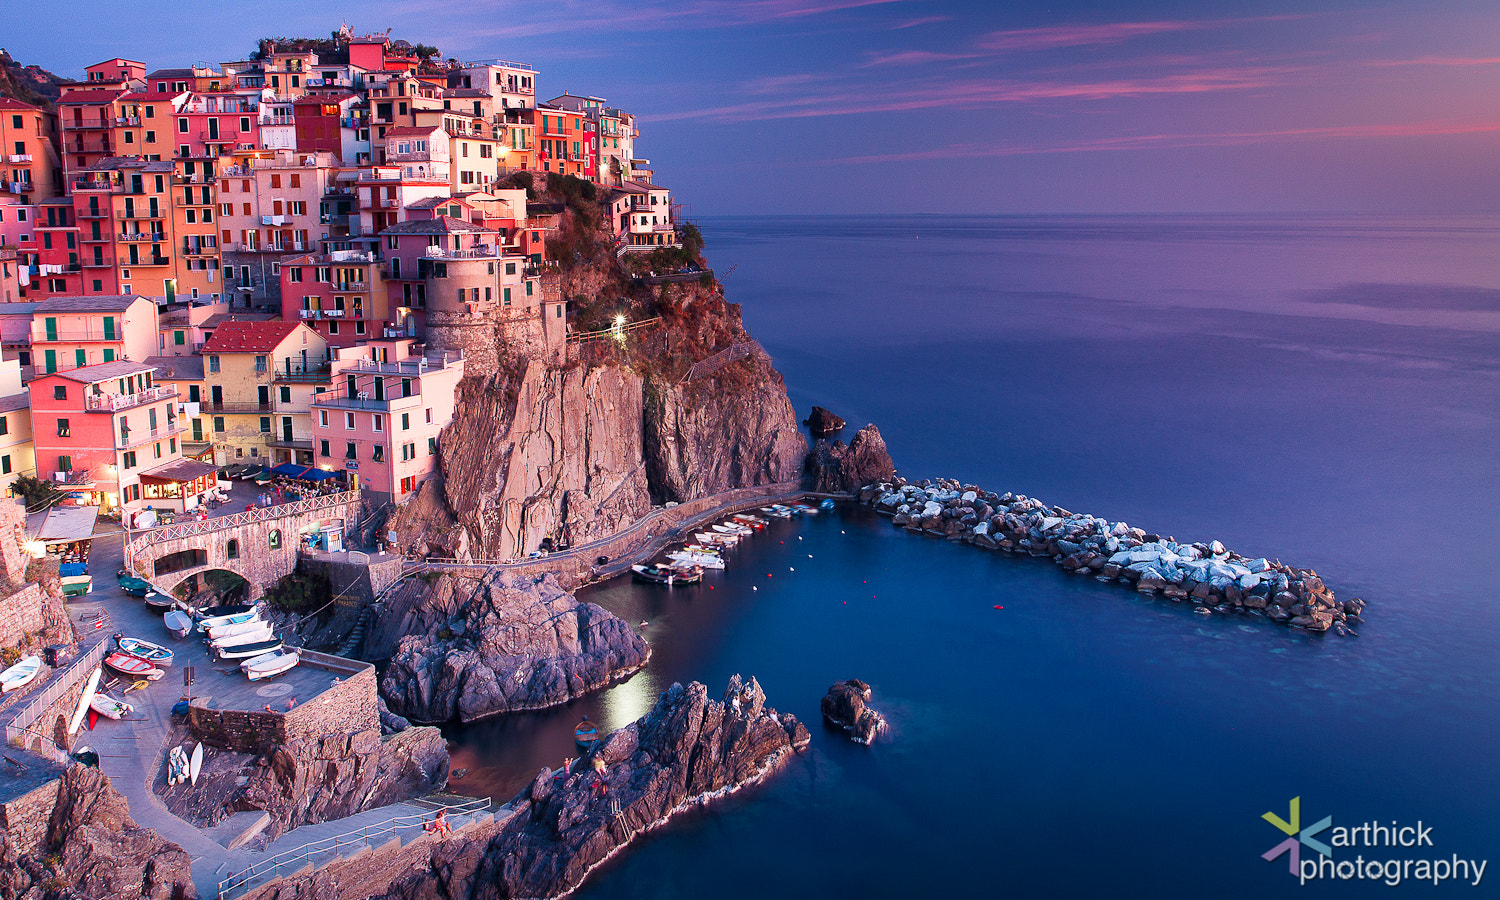 Photograph The Divine Sunset @ Manarola by Karthick Ramachandran on 500px